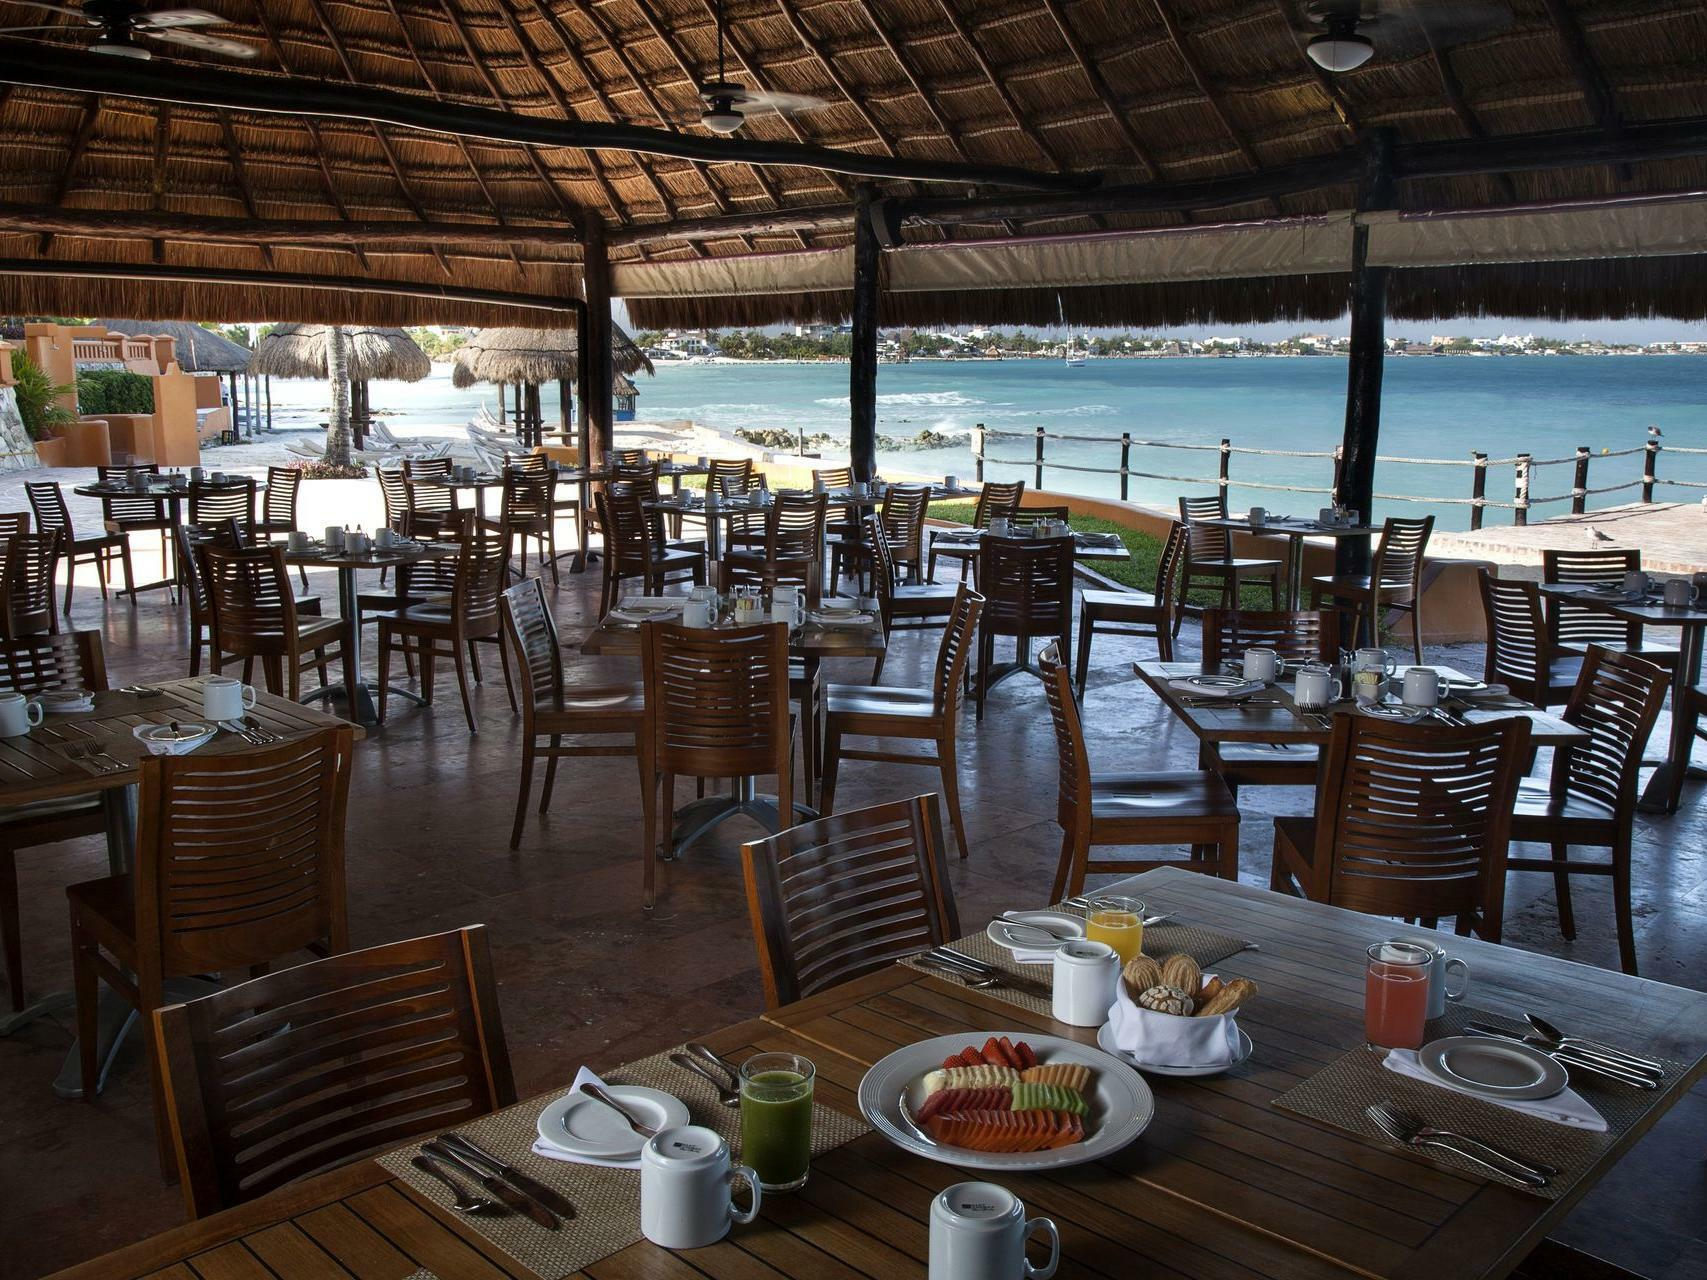 outdoor restaurant with tables and chairs